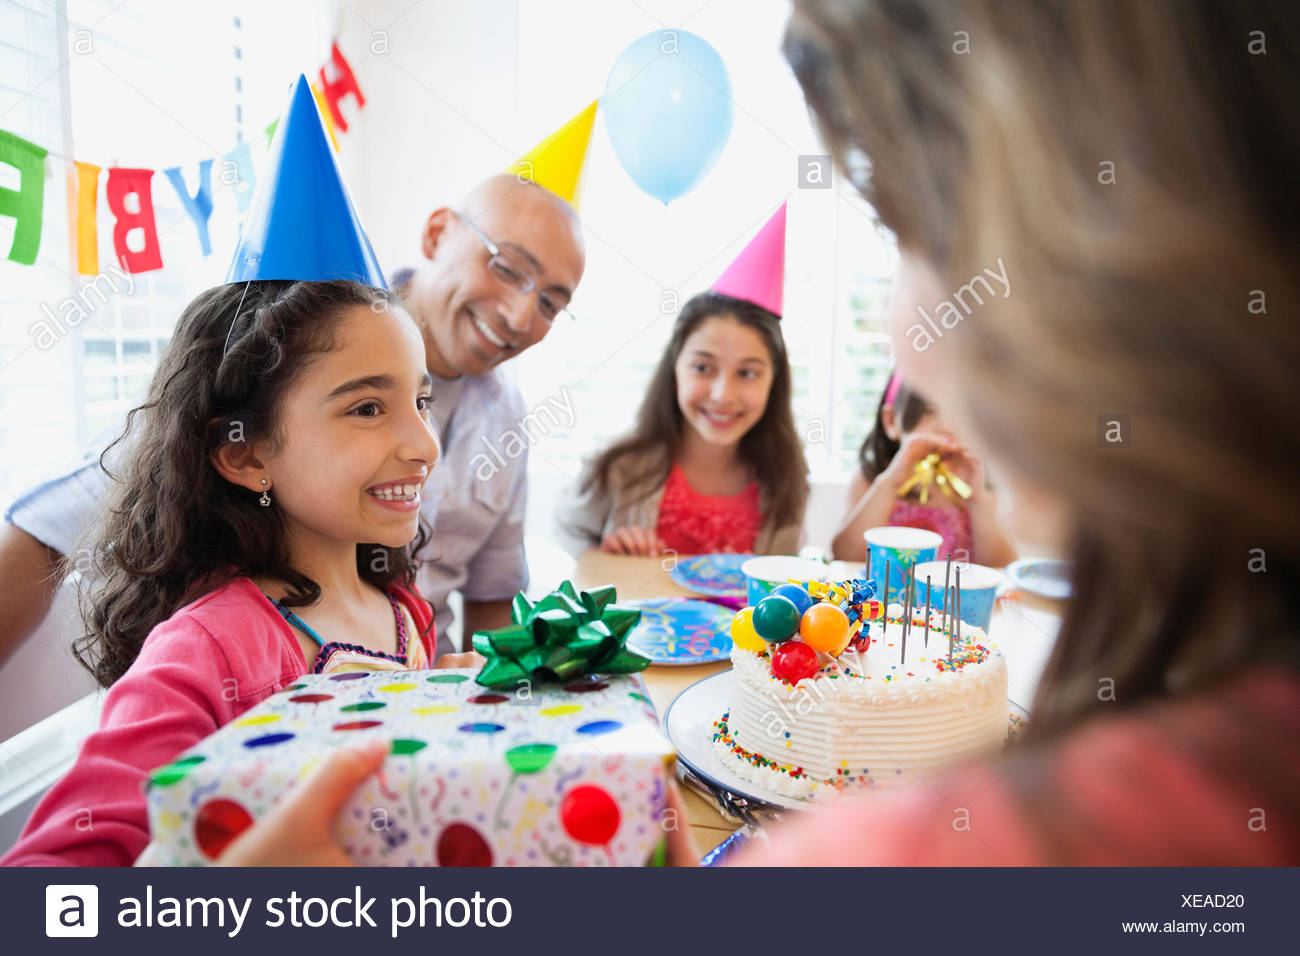 Birthday girl holding gift with family looking at her - Stock Image